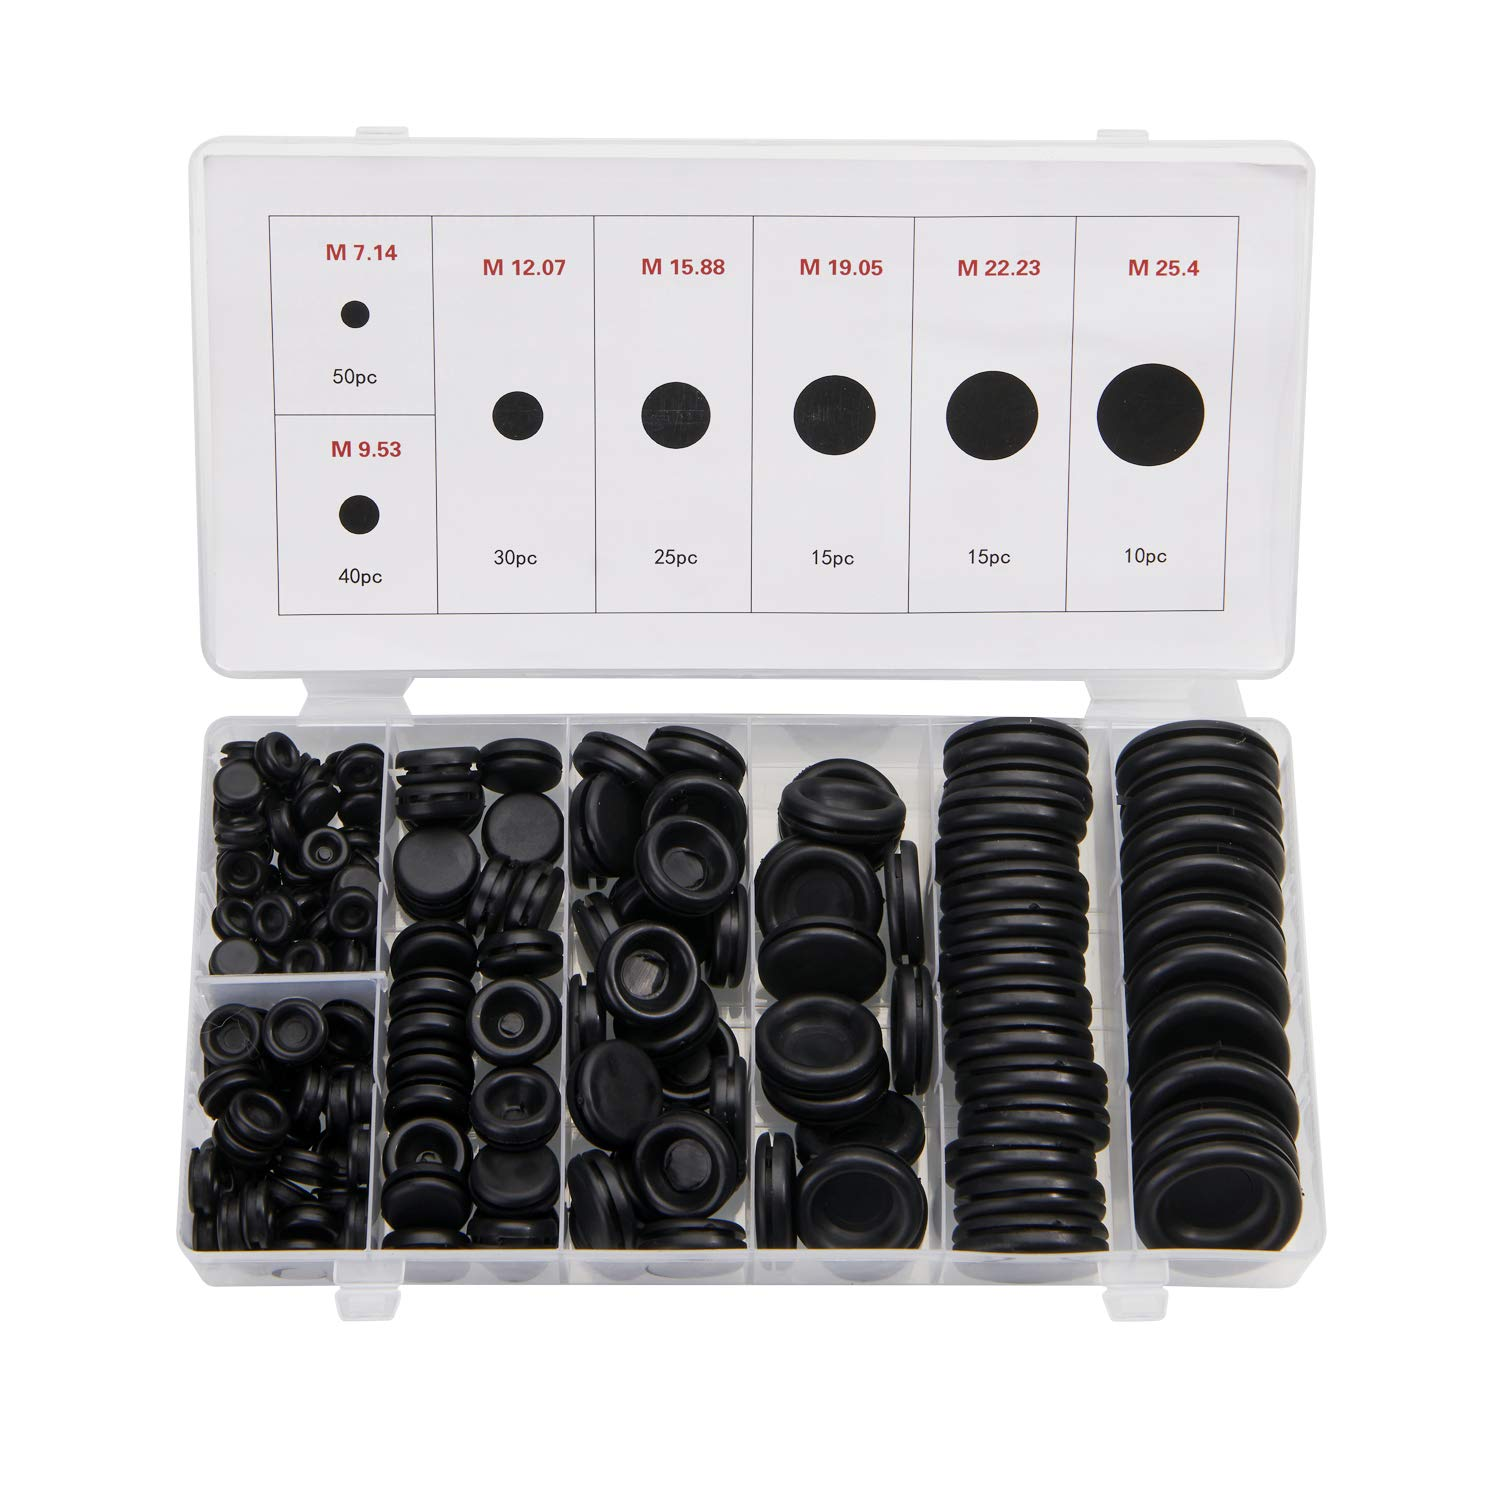 Busy-Corner 185pcs Closed Rubber Grommet Assortment,7 Sizes Electrical Wire Gasket Firewall Solid Hole Plugs Wire Gasket Assortment Kit for Wires,Cable,Wall Hole